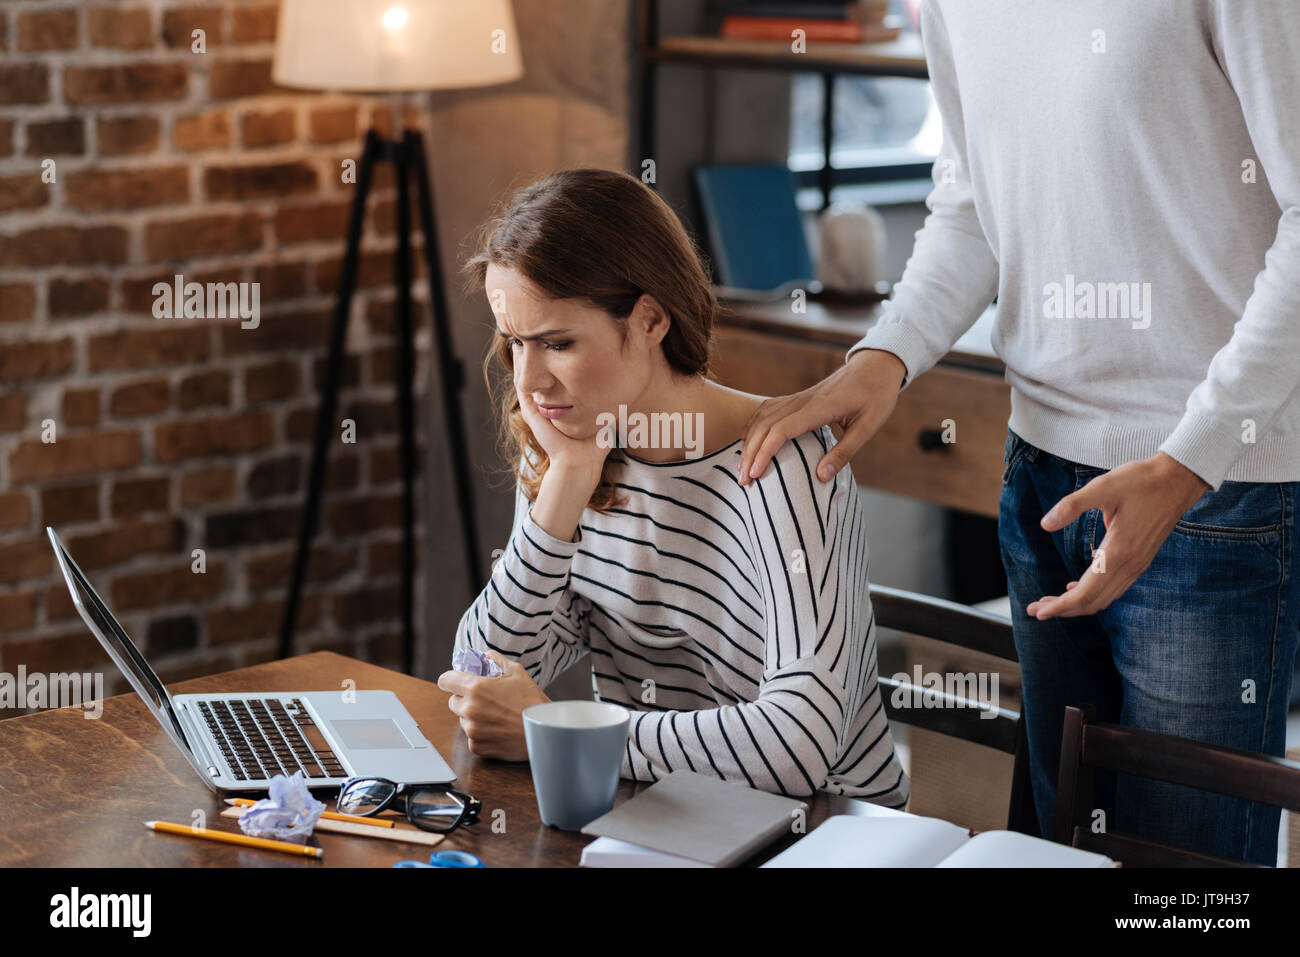 Cheerless thoughtful woman looking at the laptop screen - Stock Image